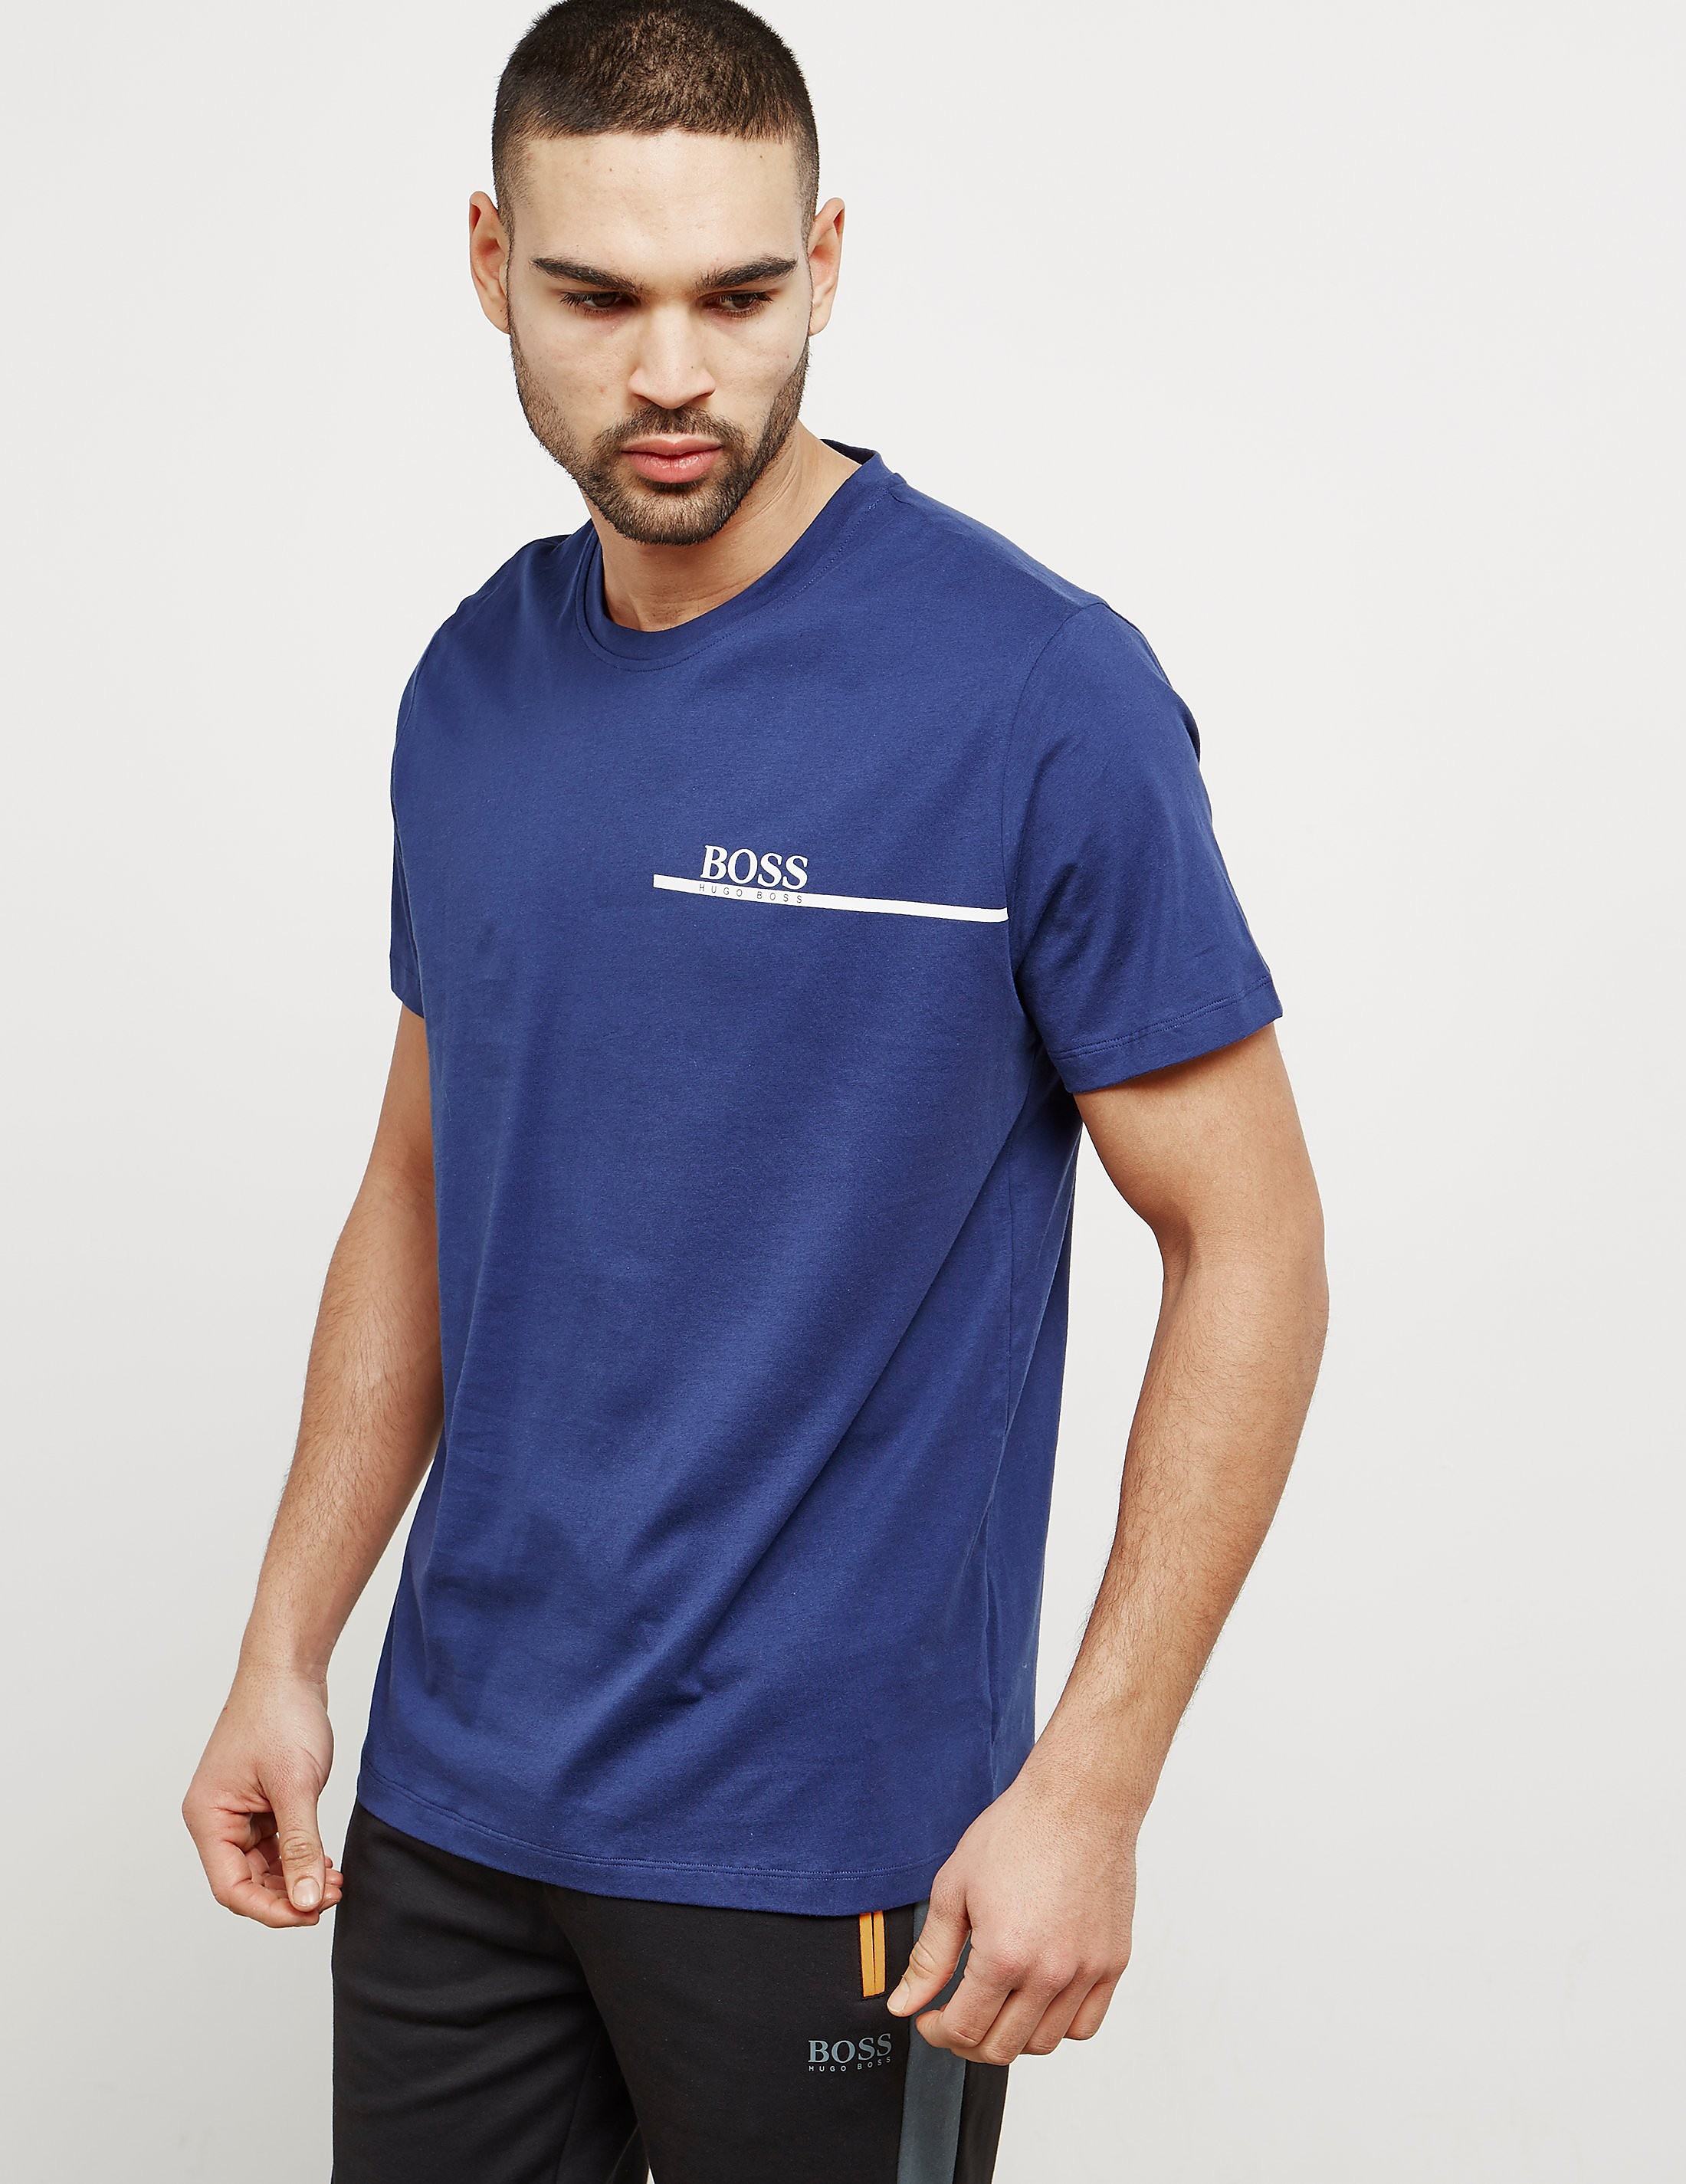 BOSS Underline Short Sleeve T-Shirt